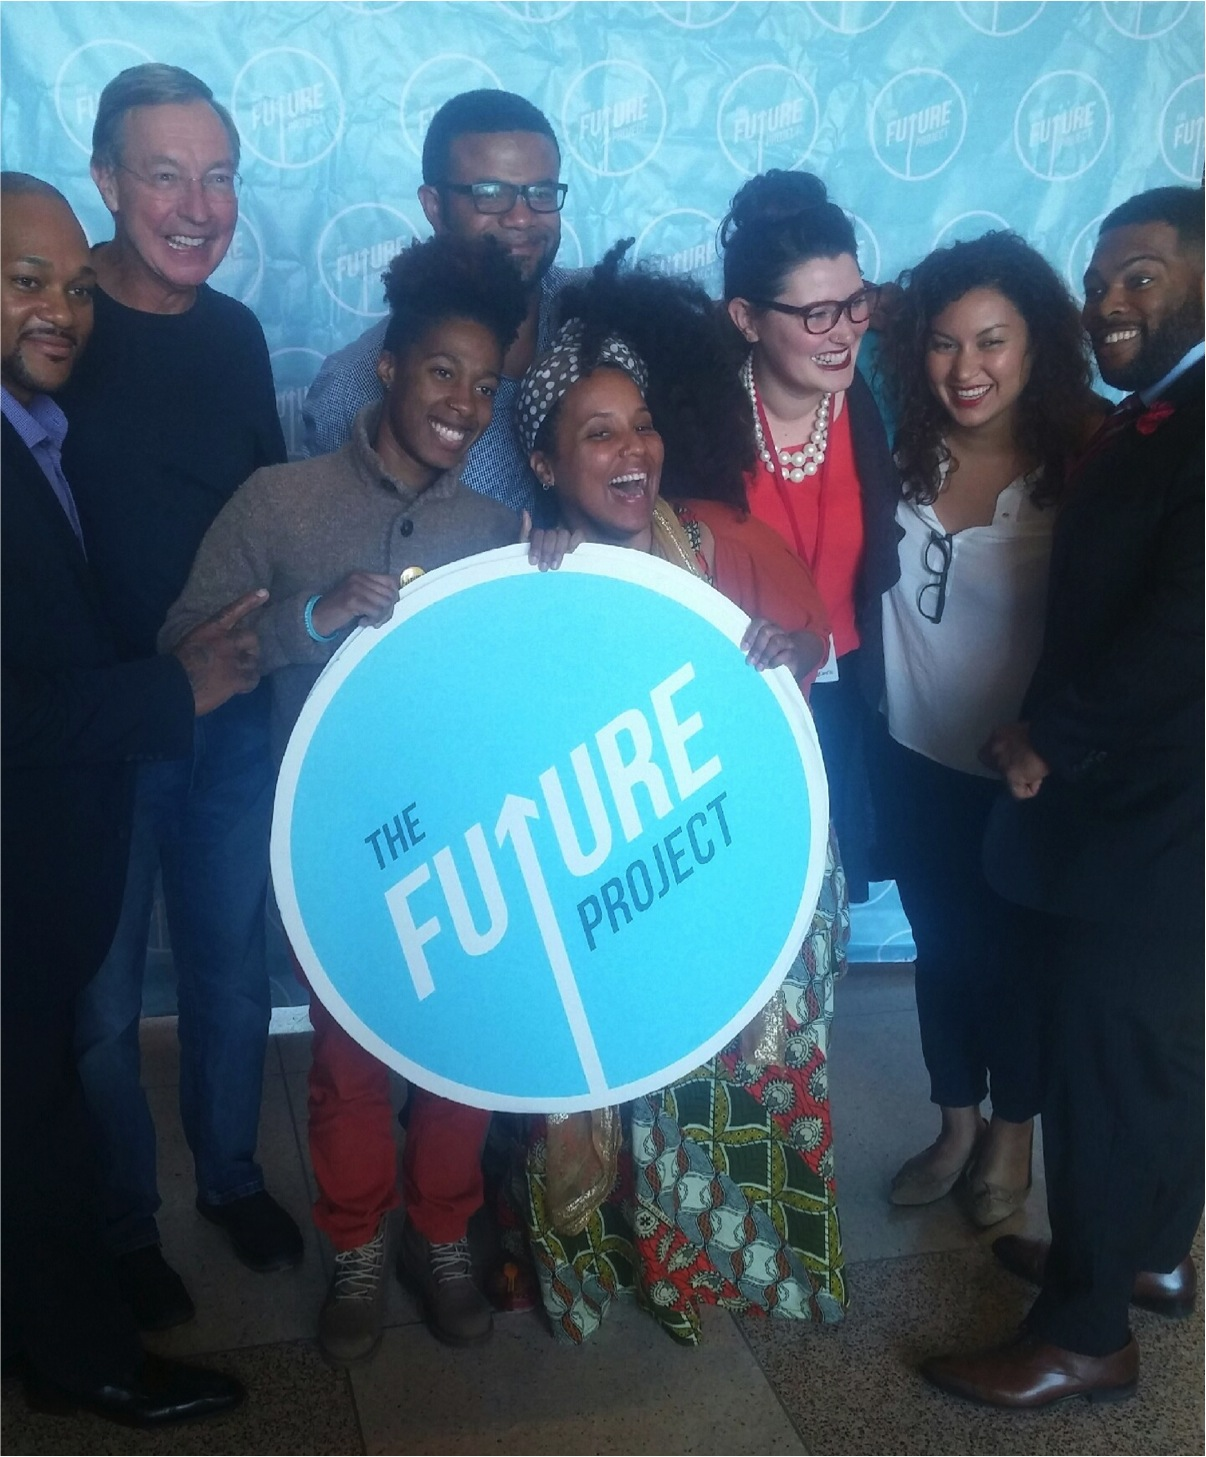 the future project screening